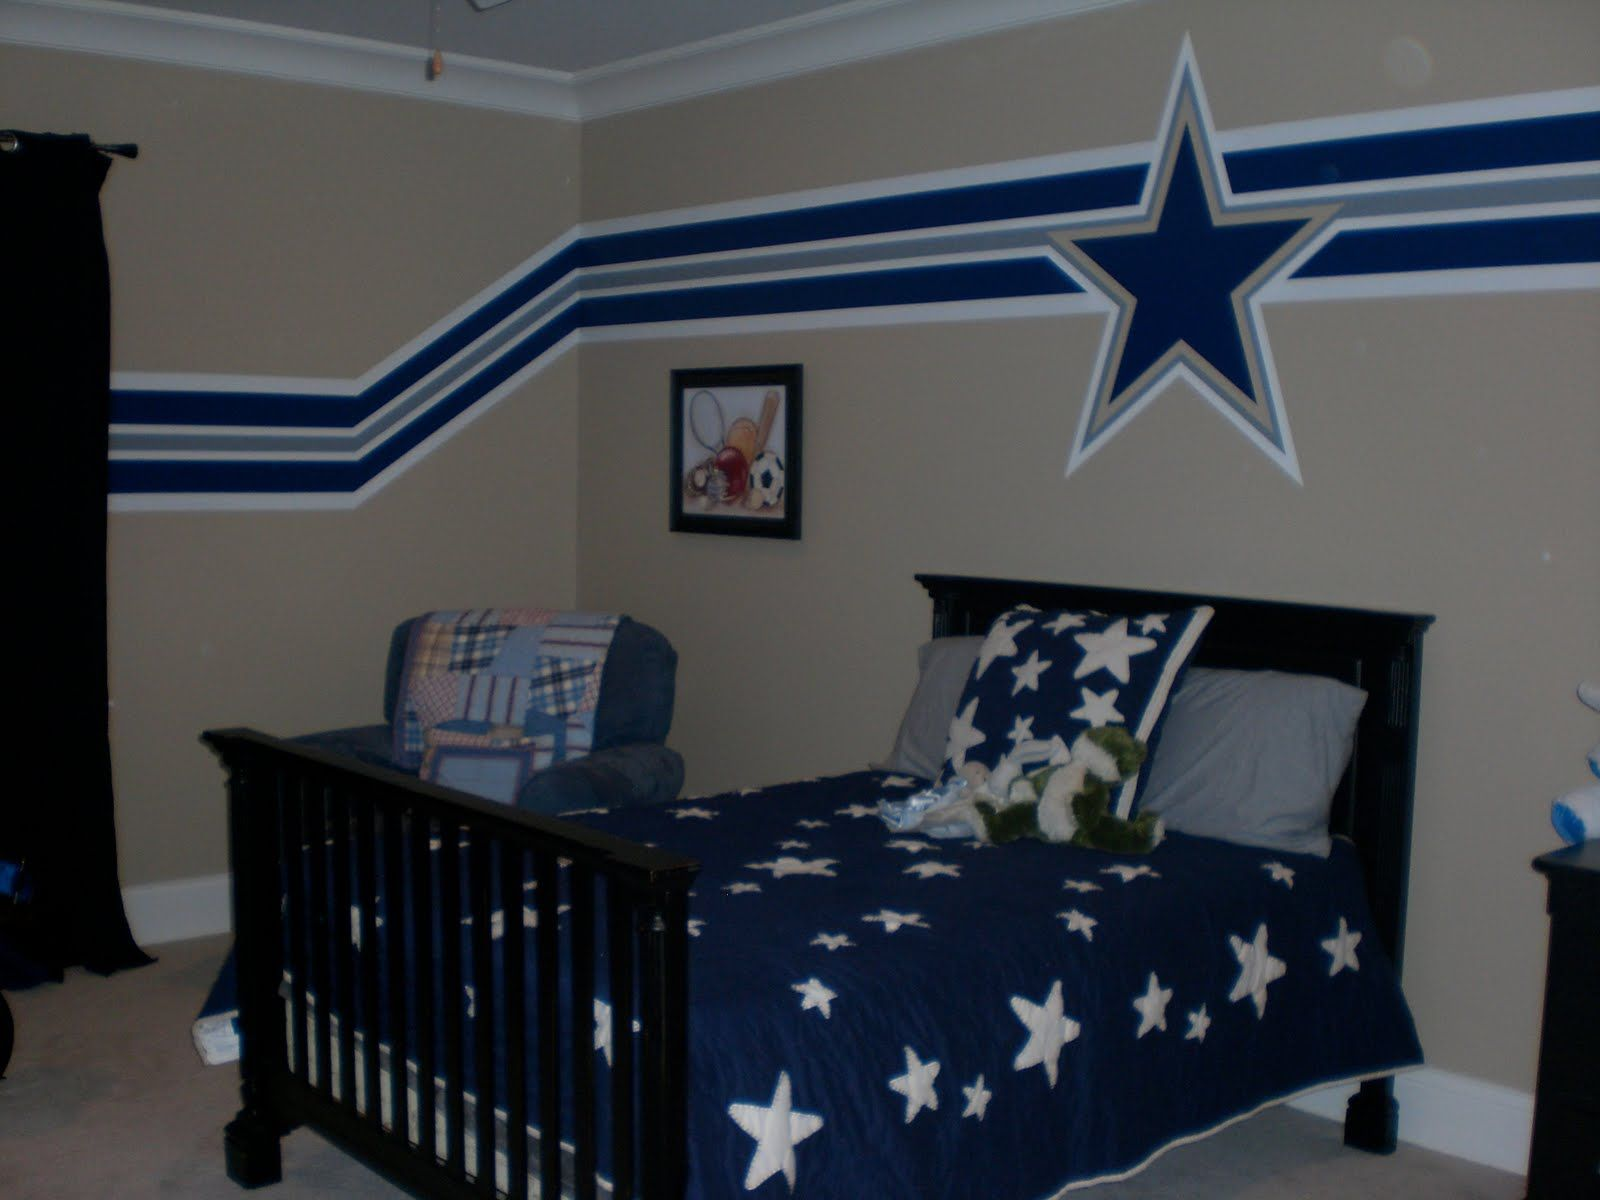 Boys bedroom designs sports - 3 Paint Ideas For Boys Room Sports With Dallas Cowboys Edition